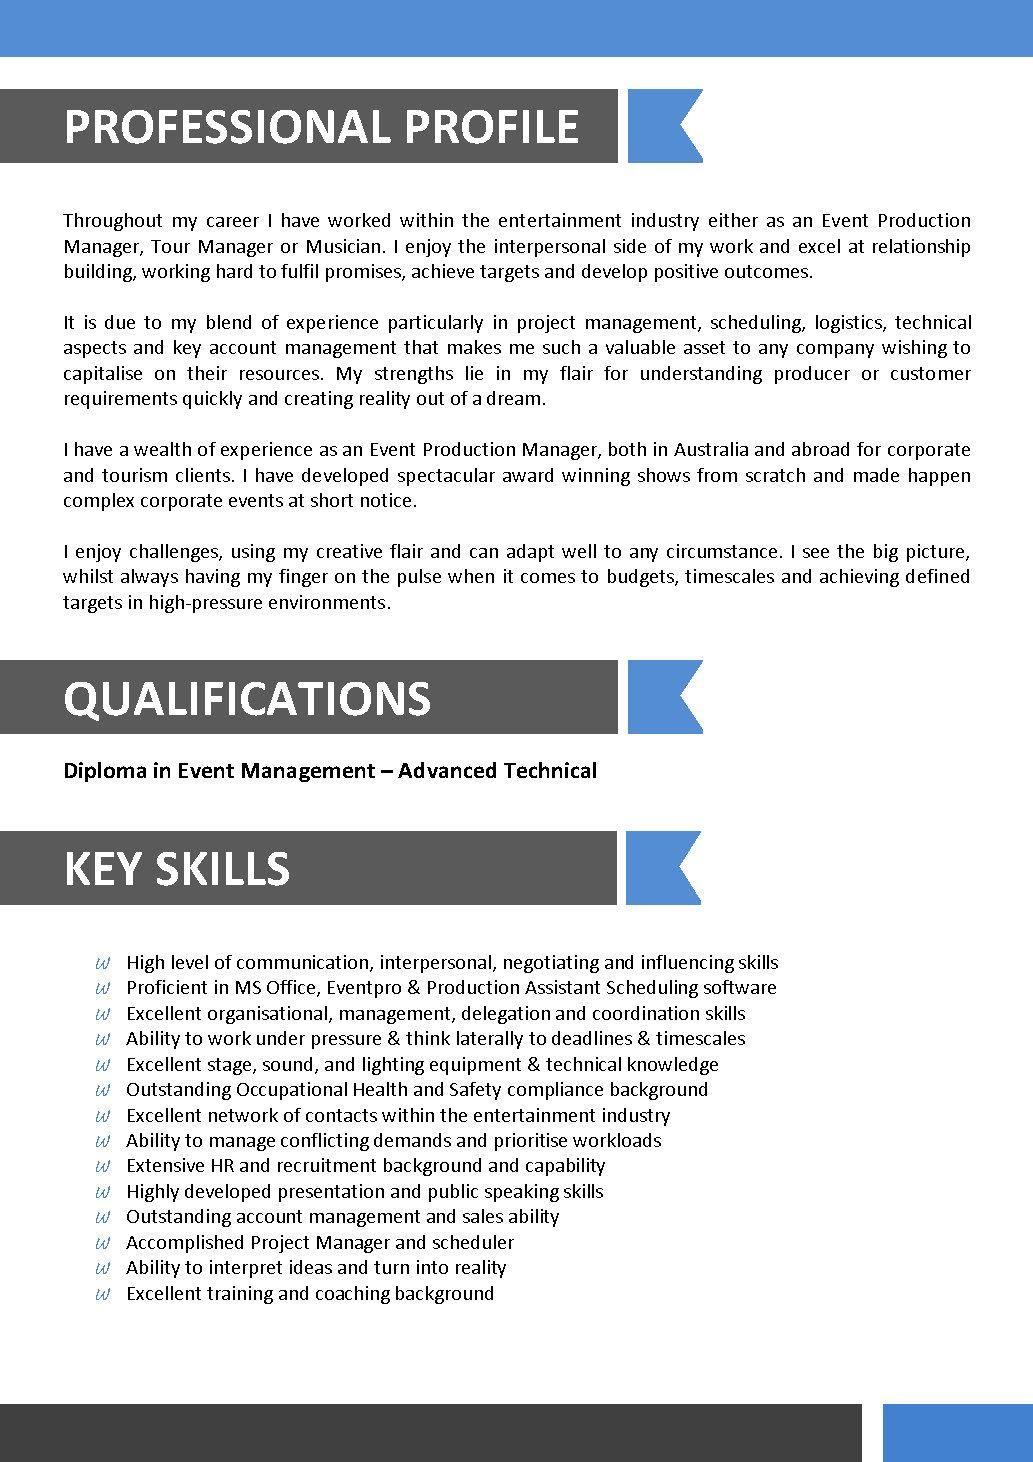 pharmaceutical industry resume template